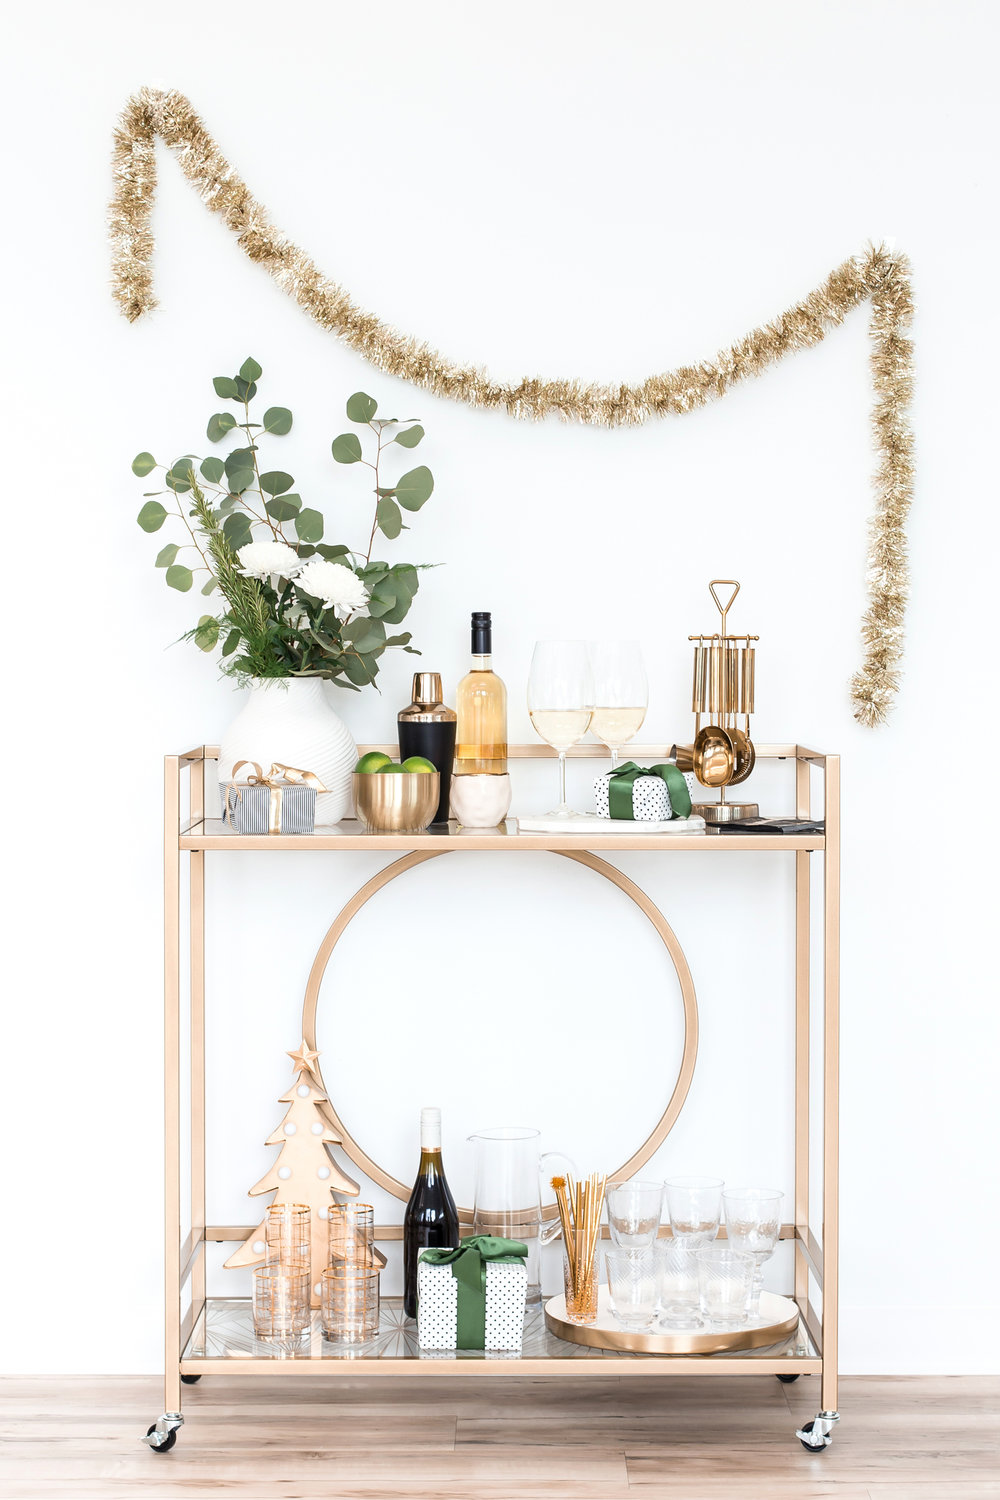 5 Bar Strategies for a Fabulous Party - Hosting family + friends at your place? Follow these tips from our friends at RealSimple to make sure your bar is stocked so you can enjoy the festivities along with your guests.We'll toast to that!